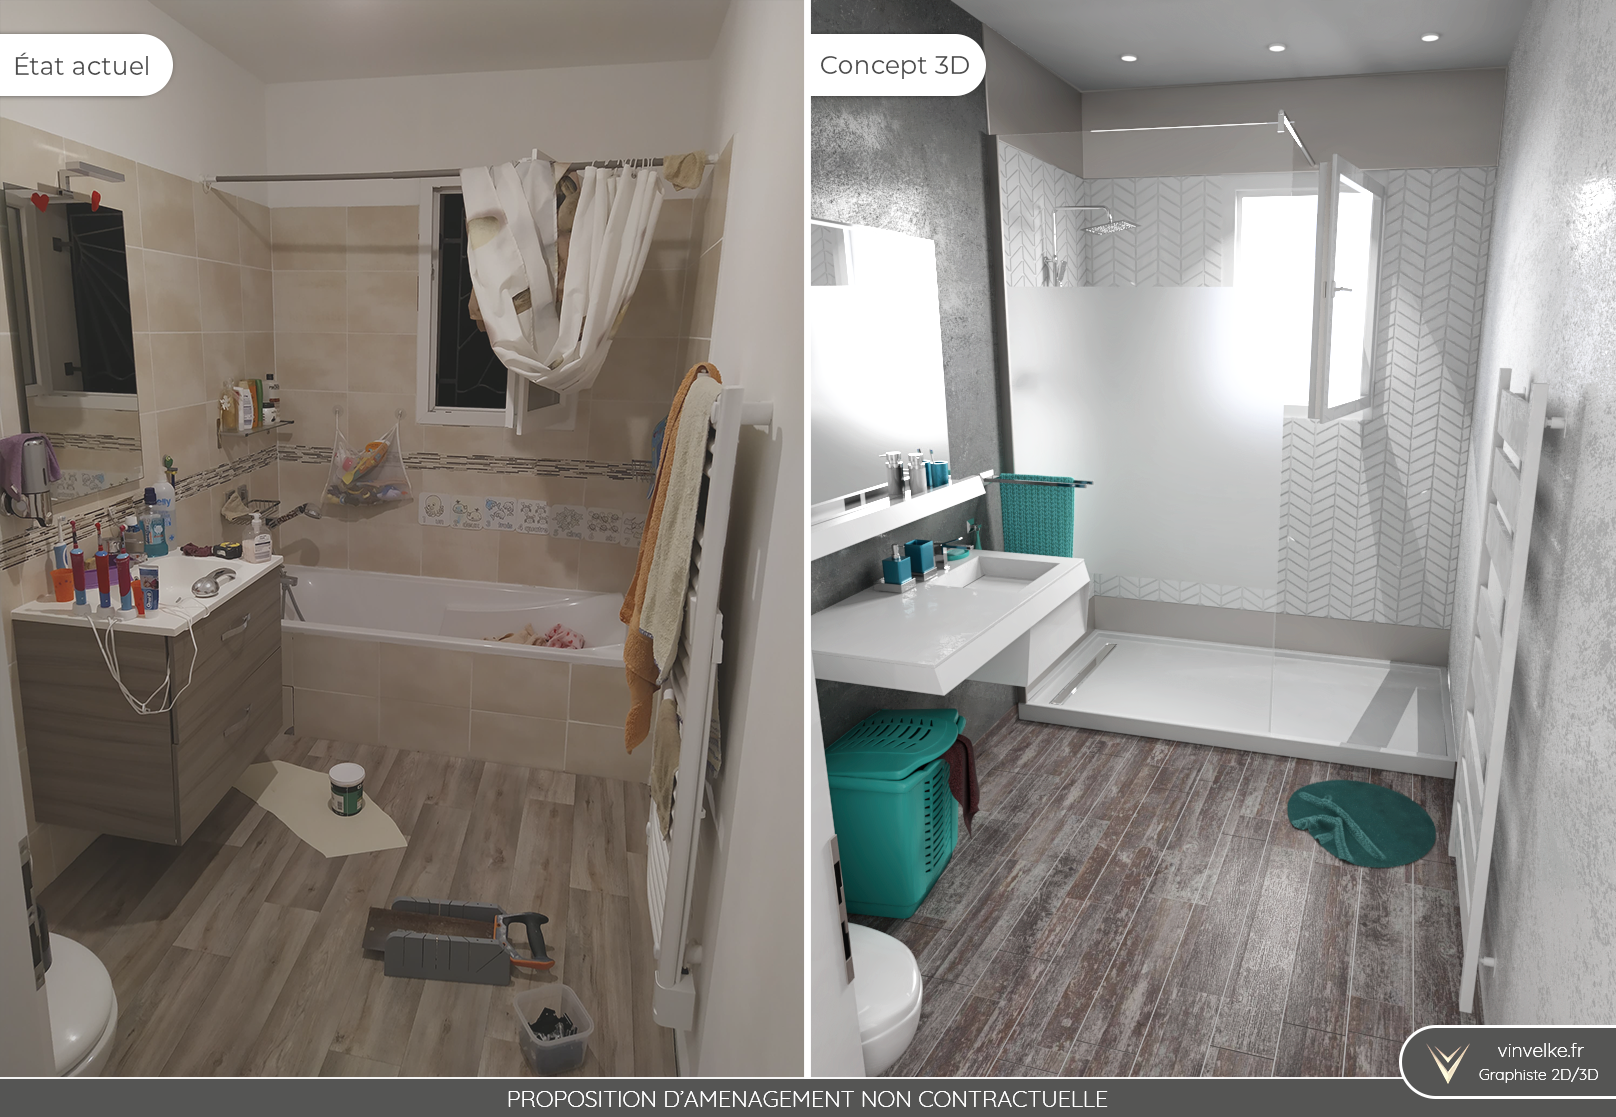 HOME STAGING 18D PHOTOREALISTE - Graphiste freelance